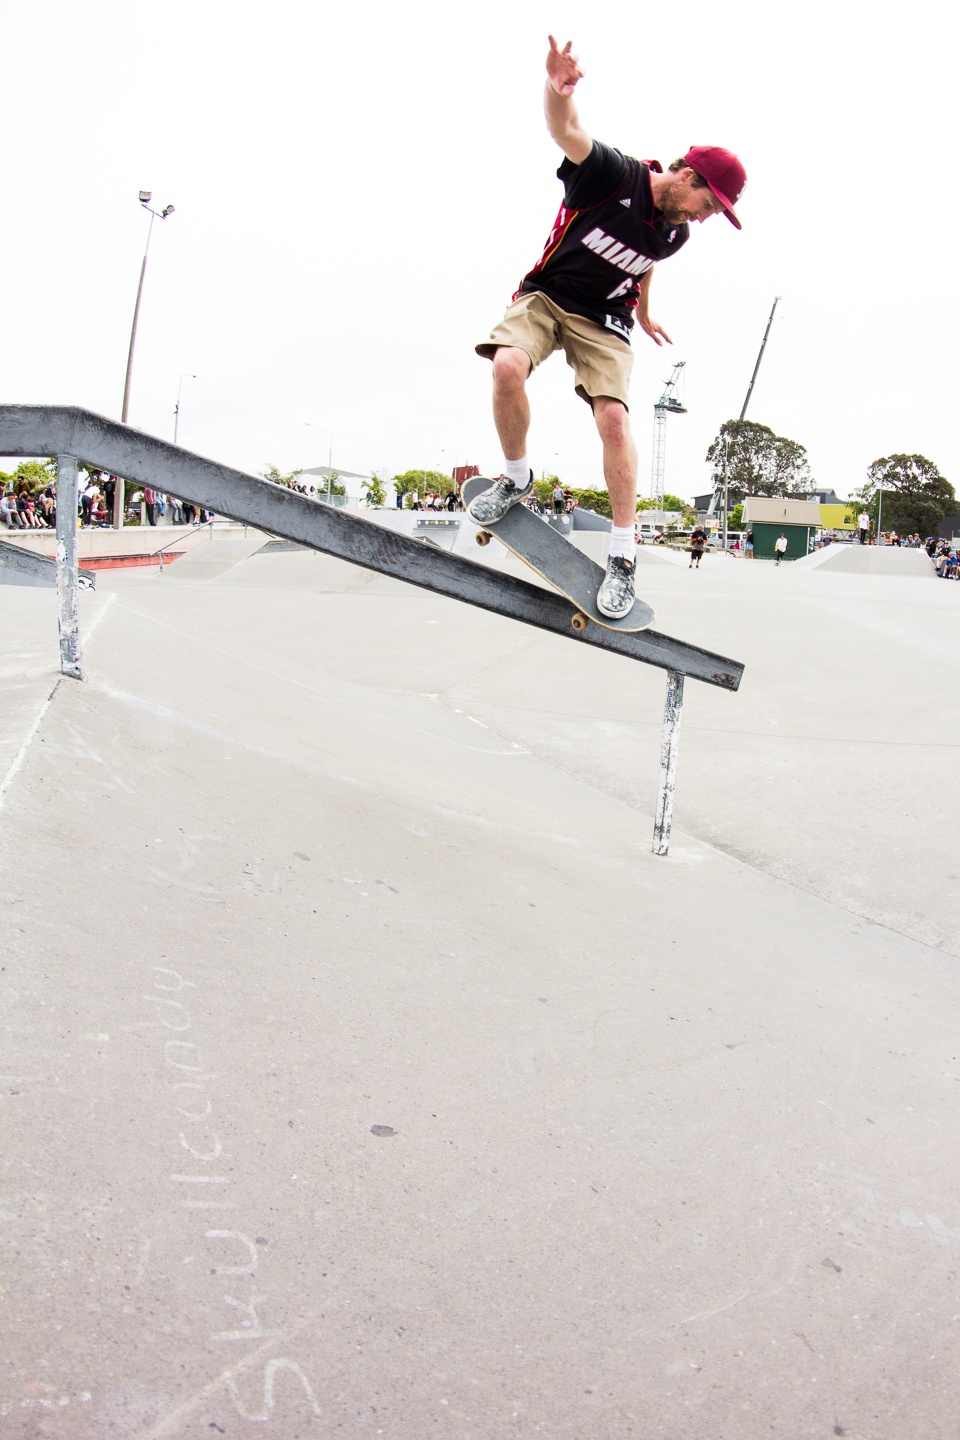 James Mclean - BS Lipslide / Jack Grant Photo